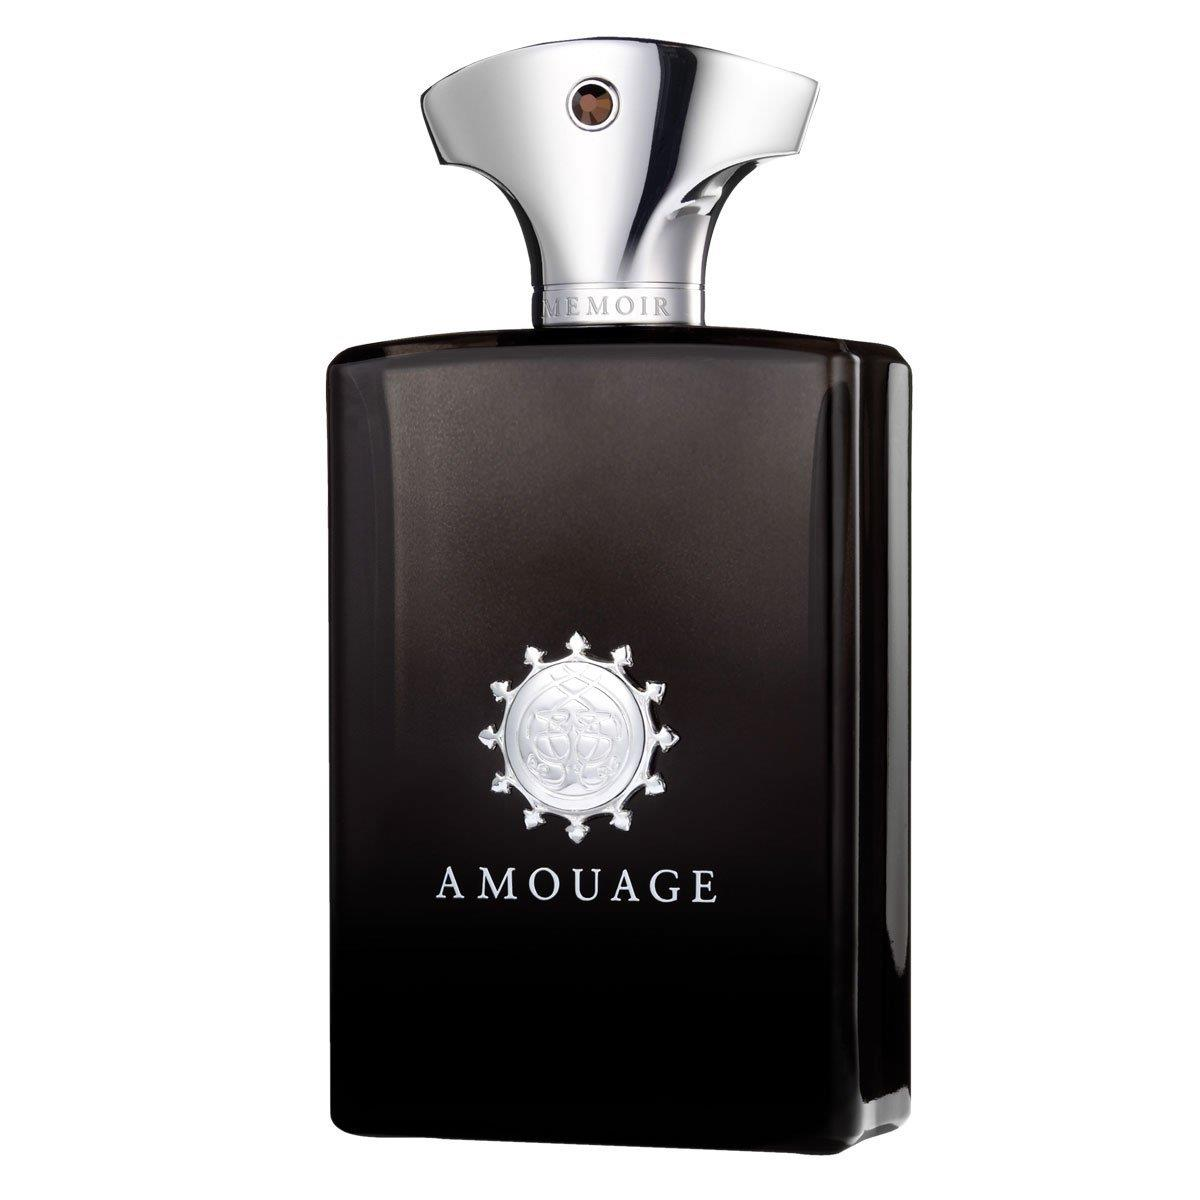 آمواج ممویر ( آمواژ ) - Amouage Memoir for men